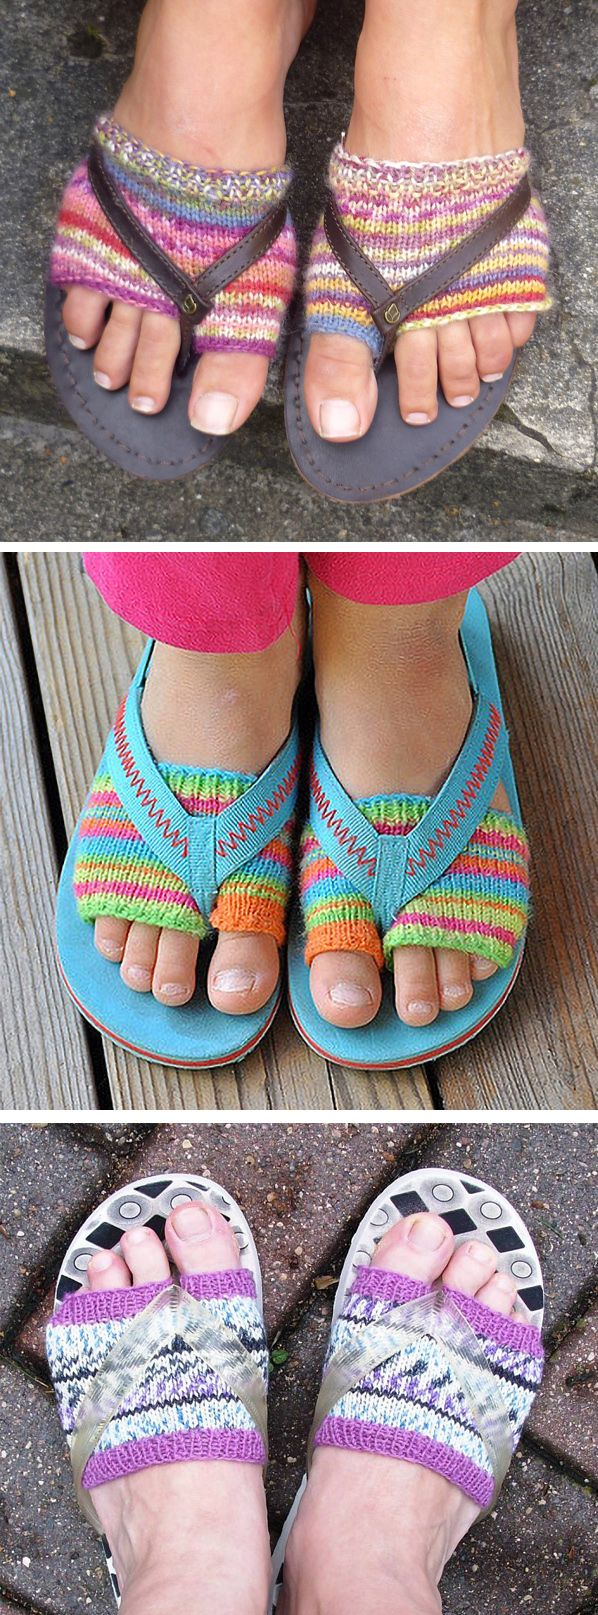 1c1c454d560928 ... more about knitting. Free Knitting Pattern for Flip Flop Socks - These  Bikinisocken liners are knit in stockinette with a separate opening for the  big ...